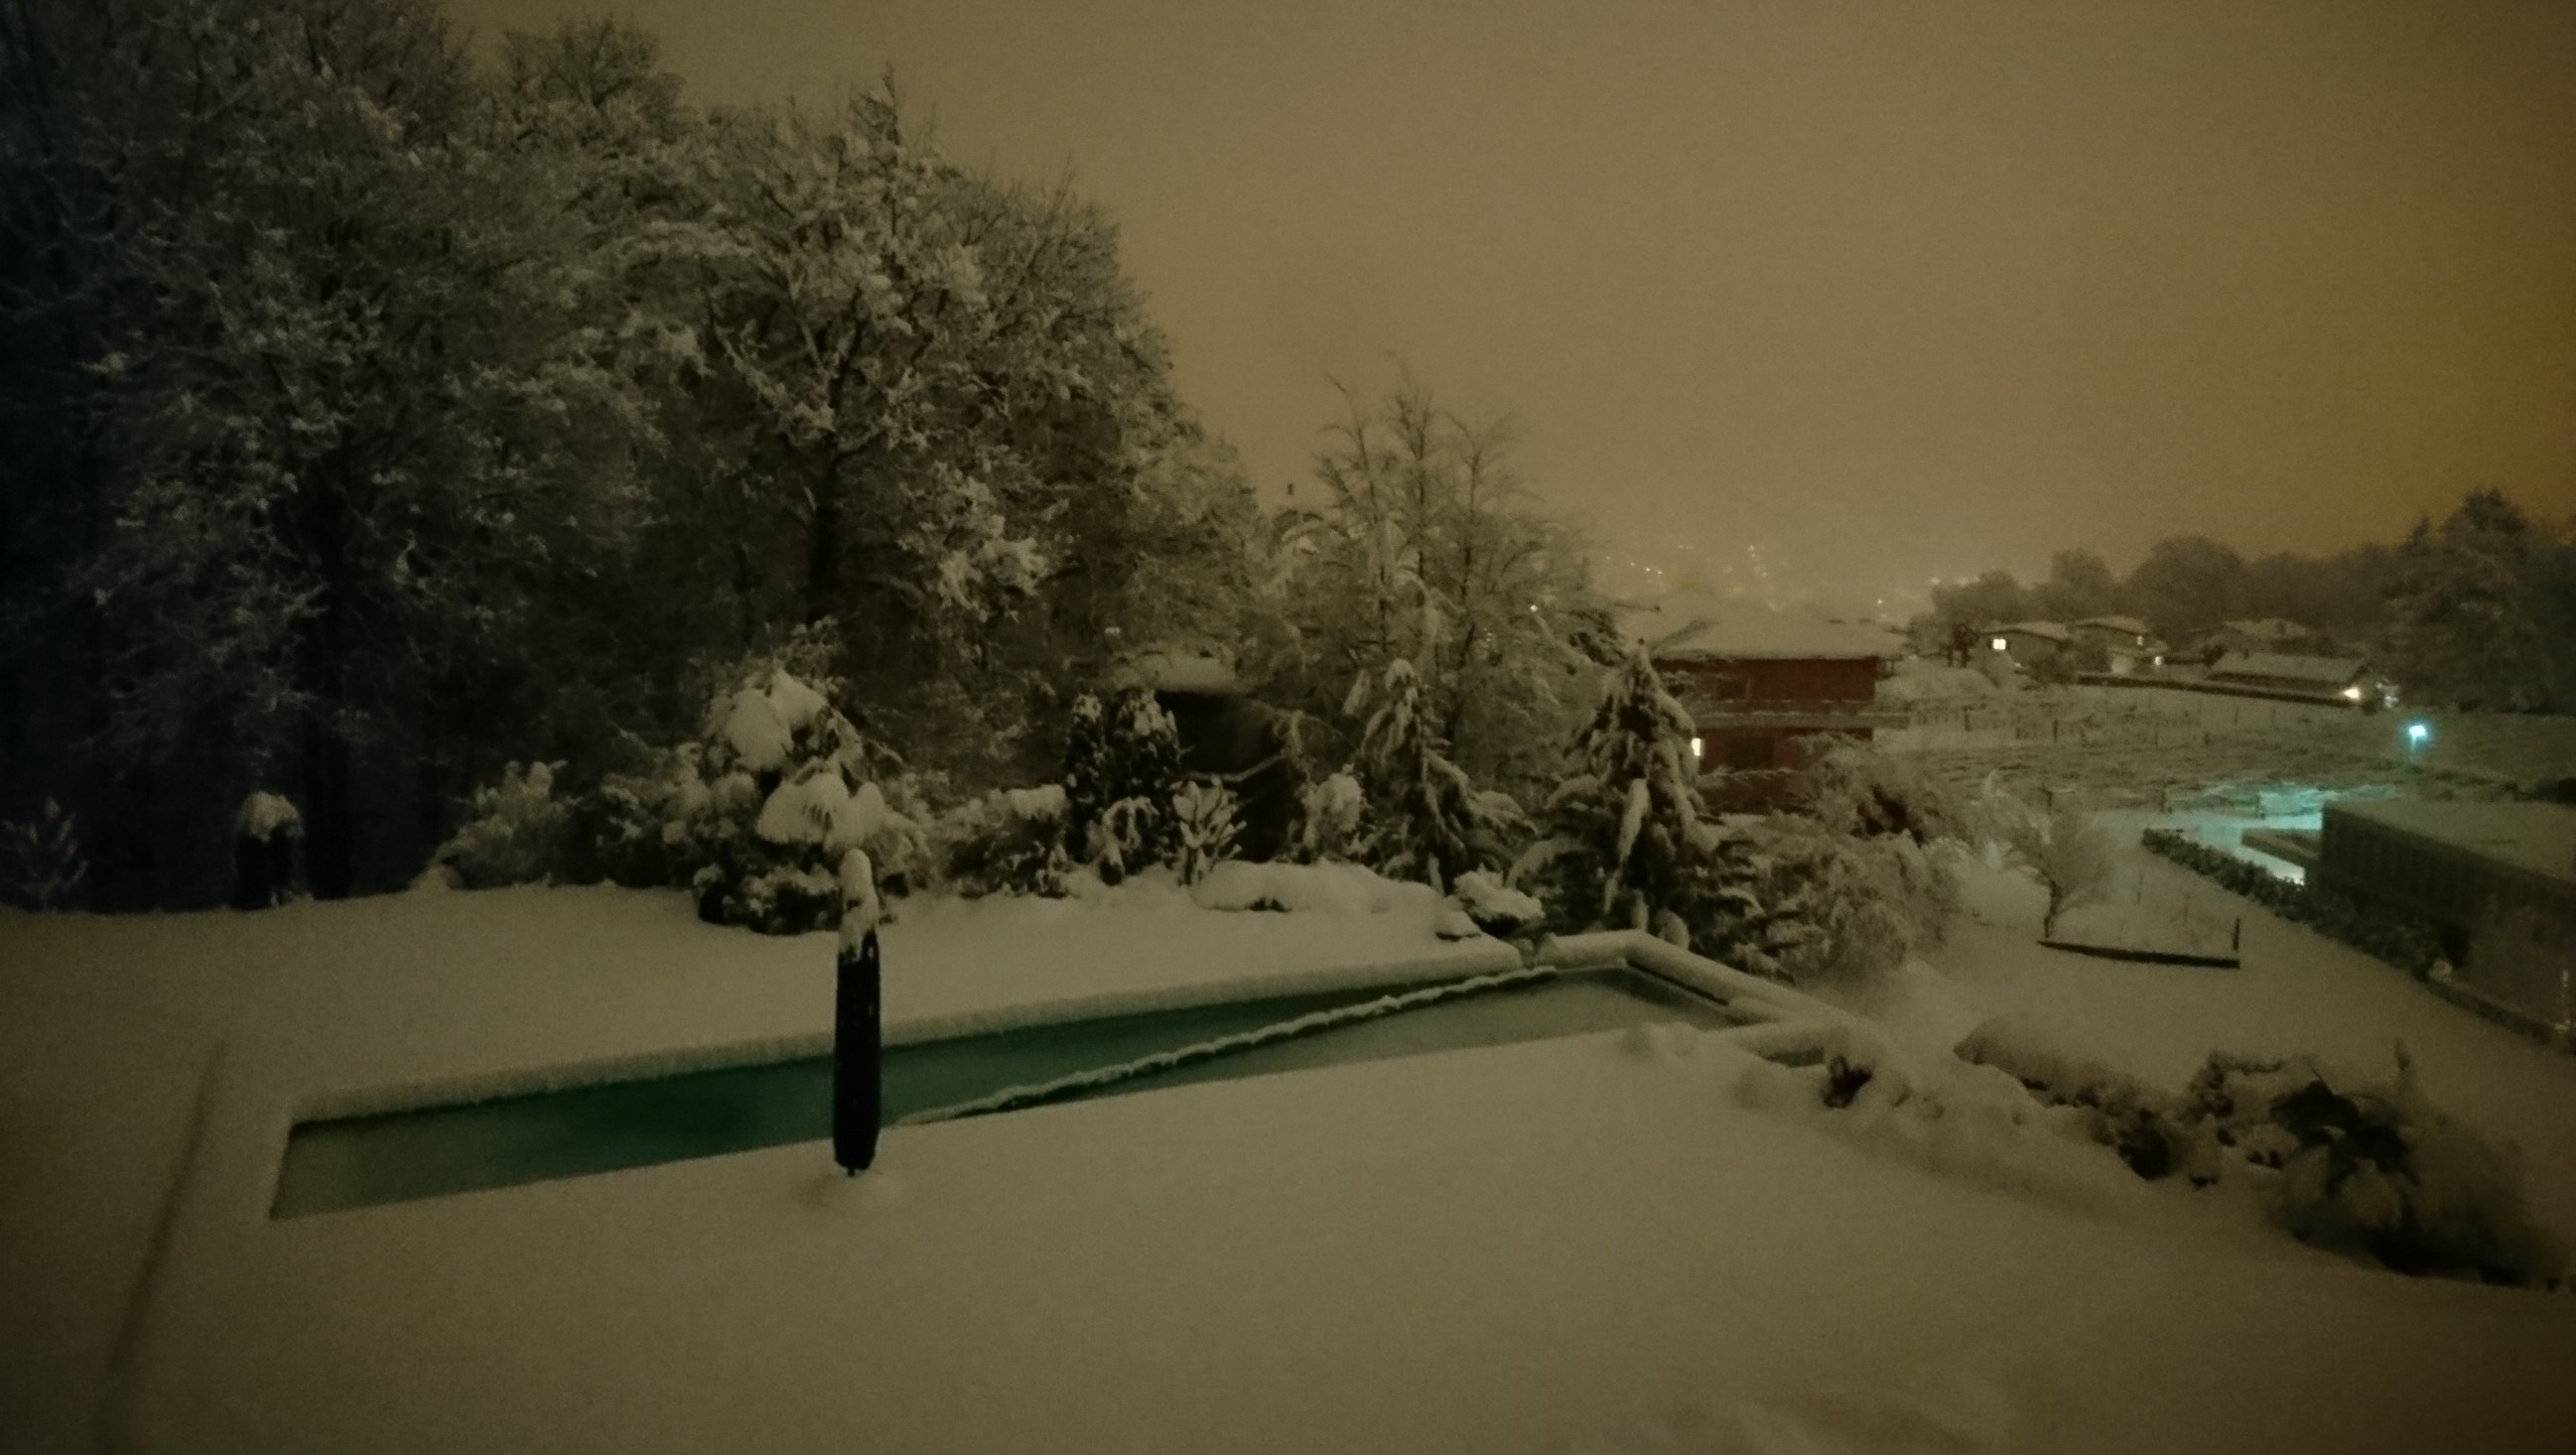 Garden with pool and umbrella: everything covered by snow. Night time picture.